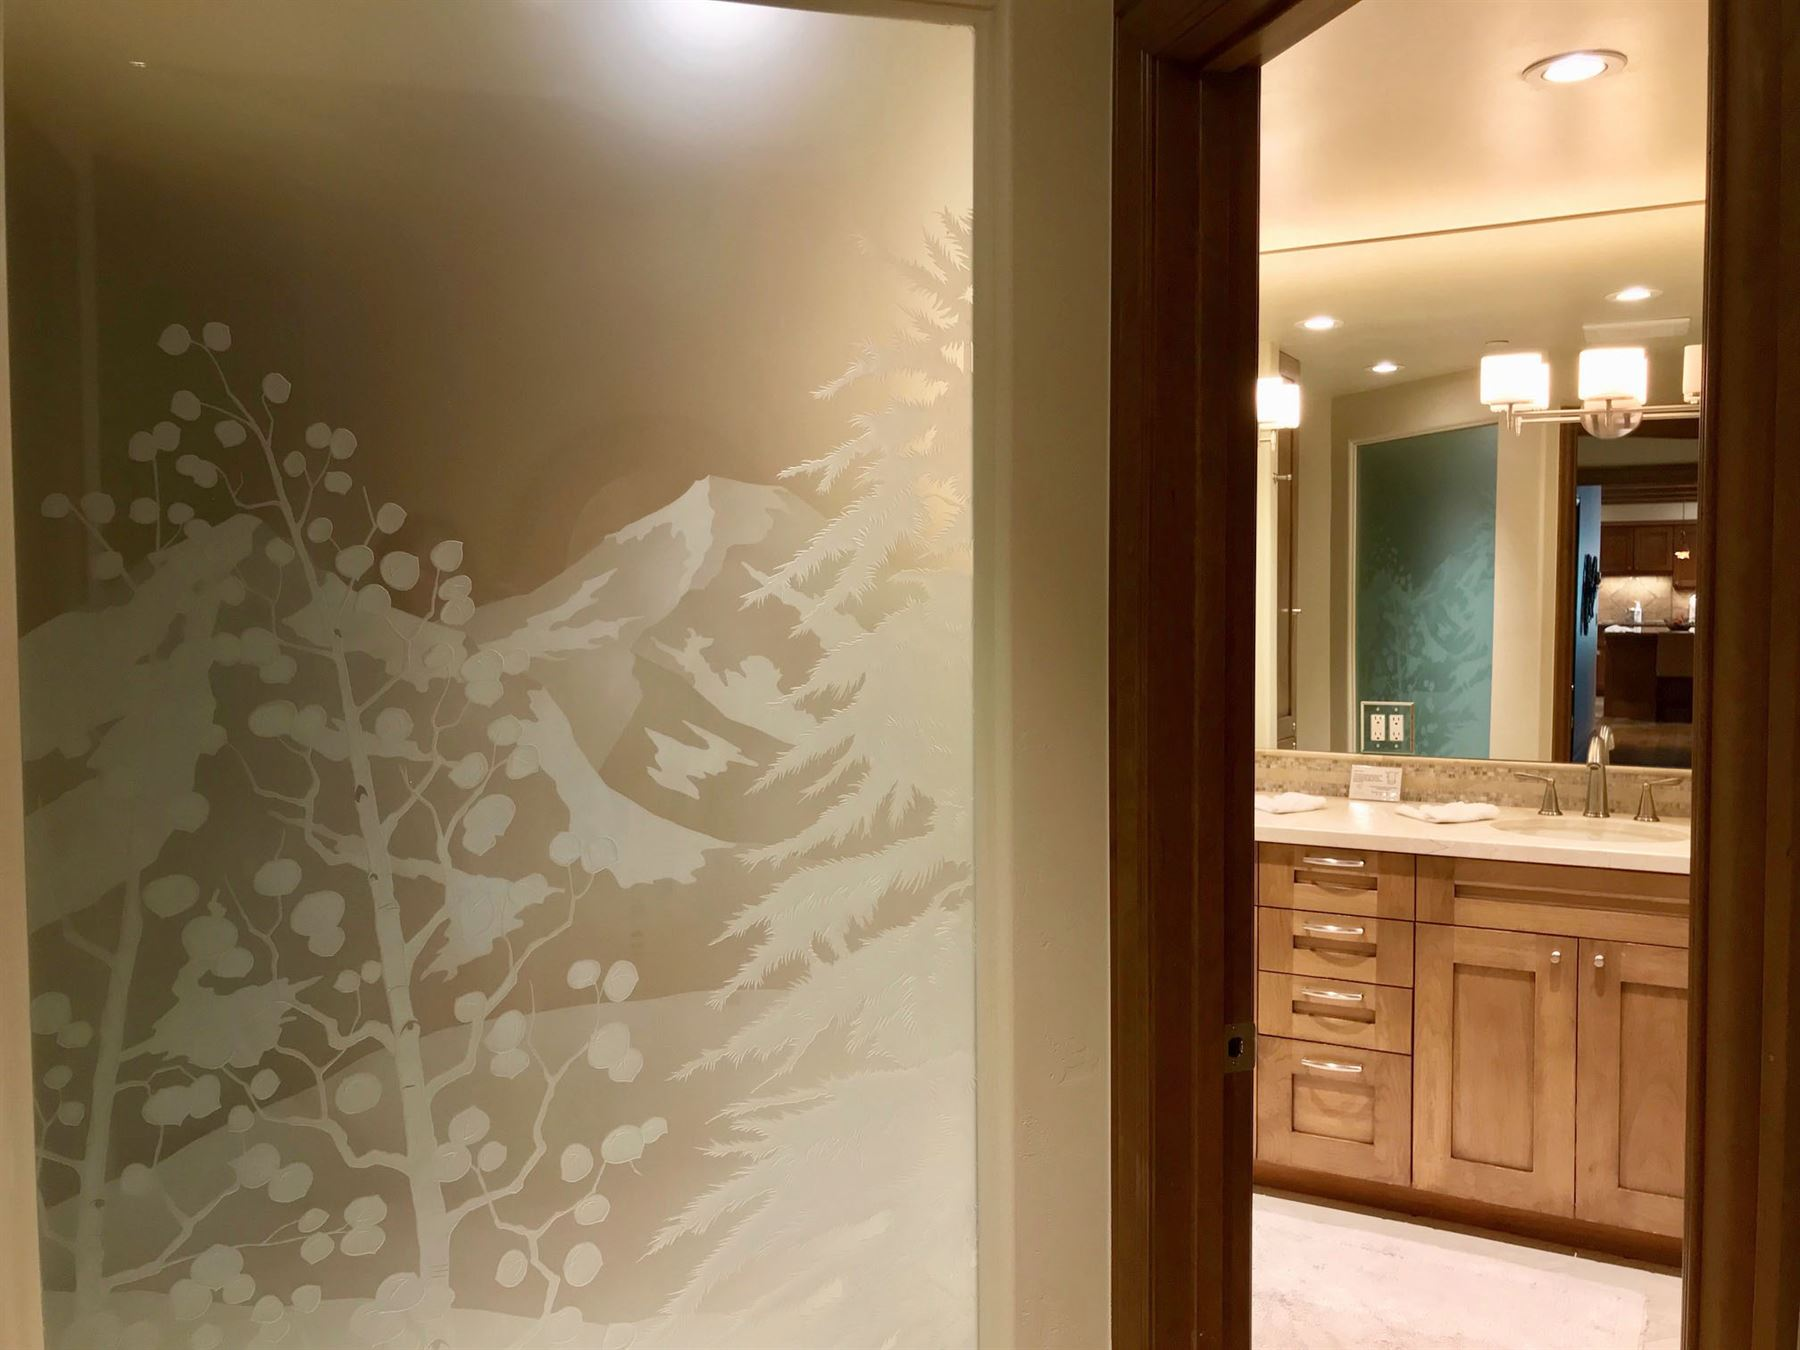 Frosted glass in the bathroom with a design of the alpine slopes